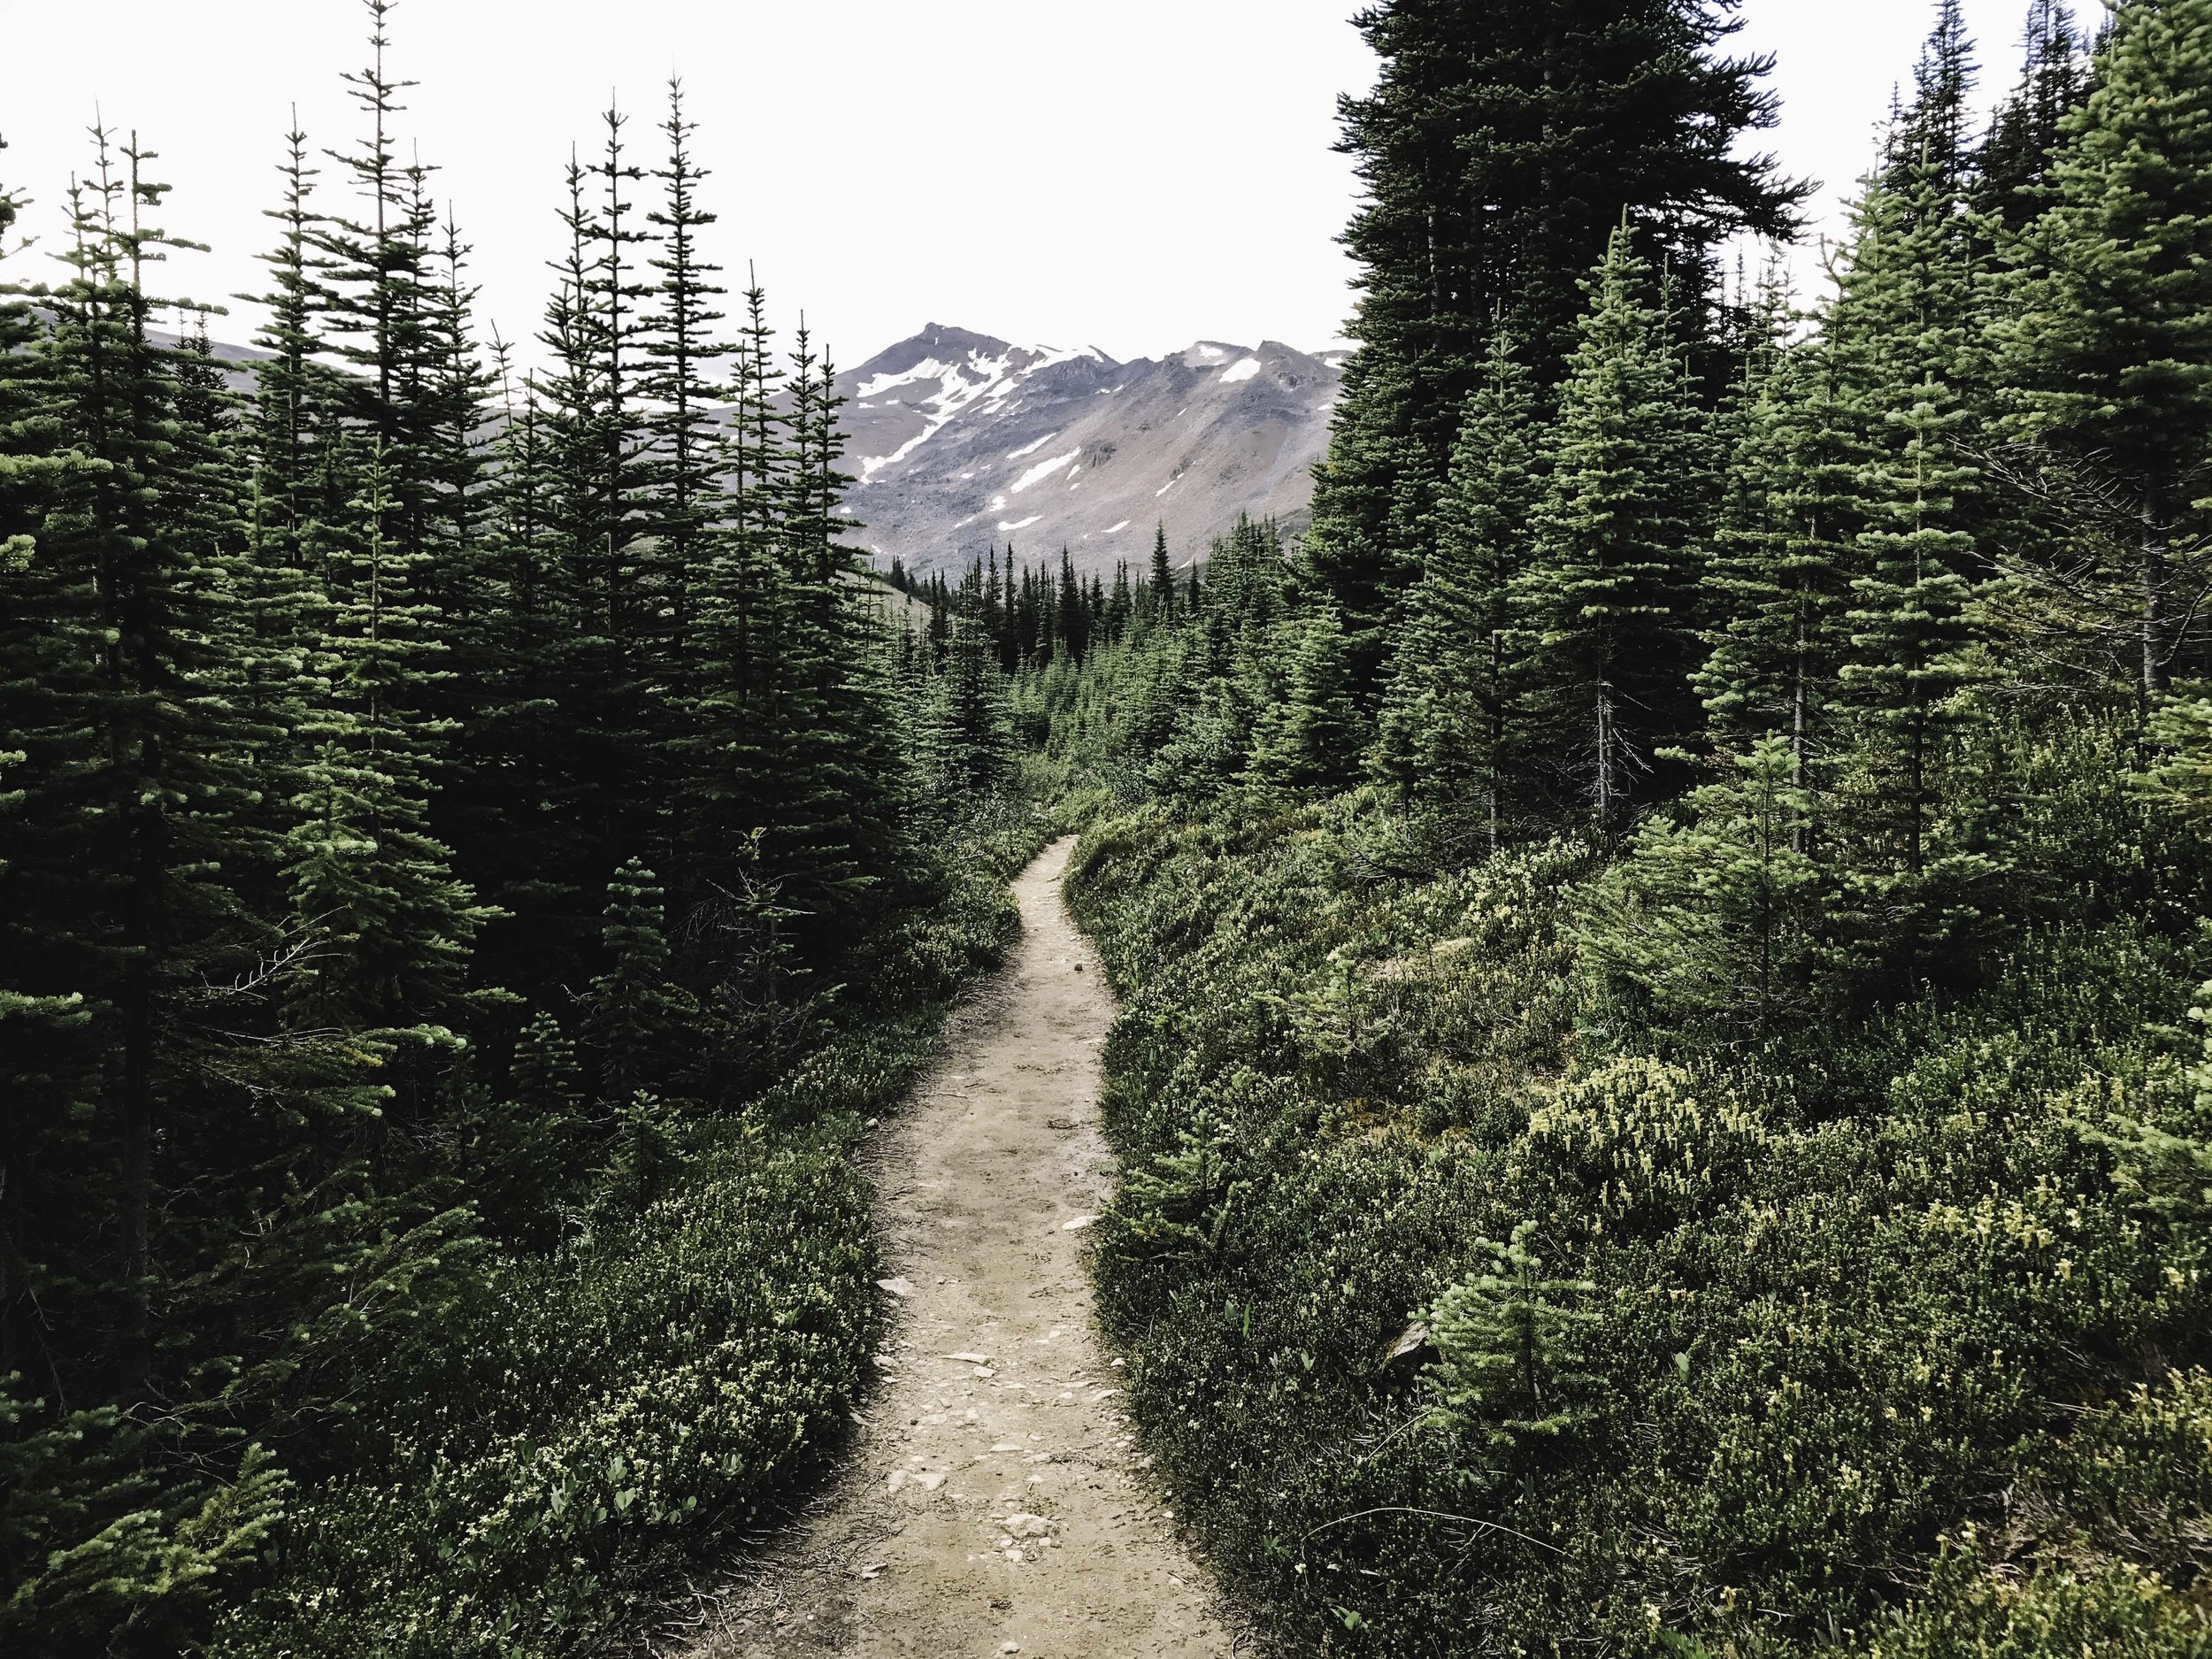 Hiking the Skyline Trail | Beyond Ordinary Guides-100.jpg